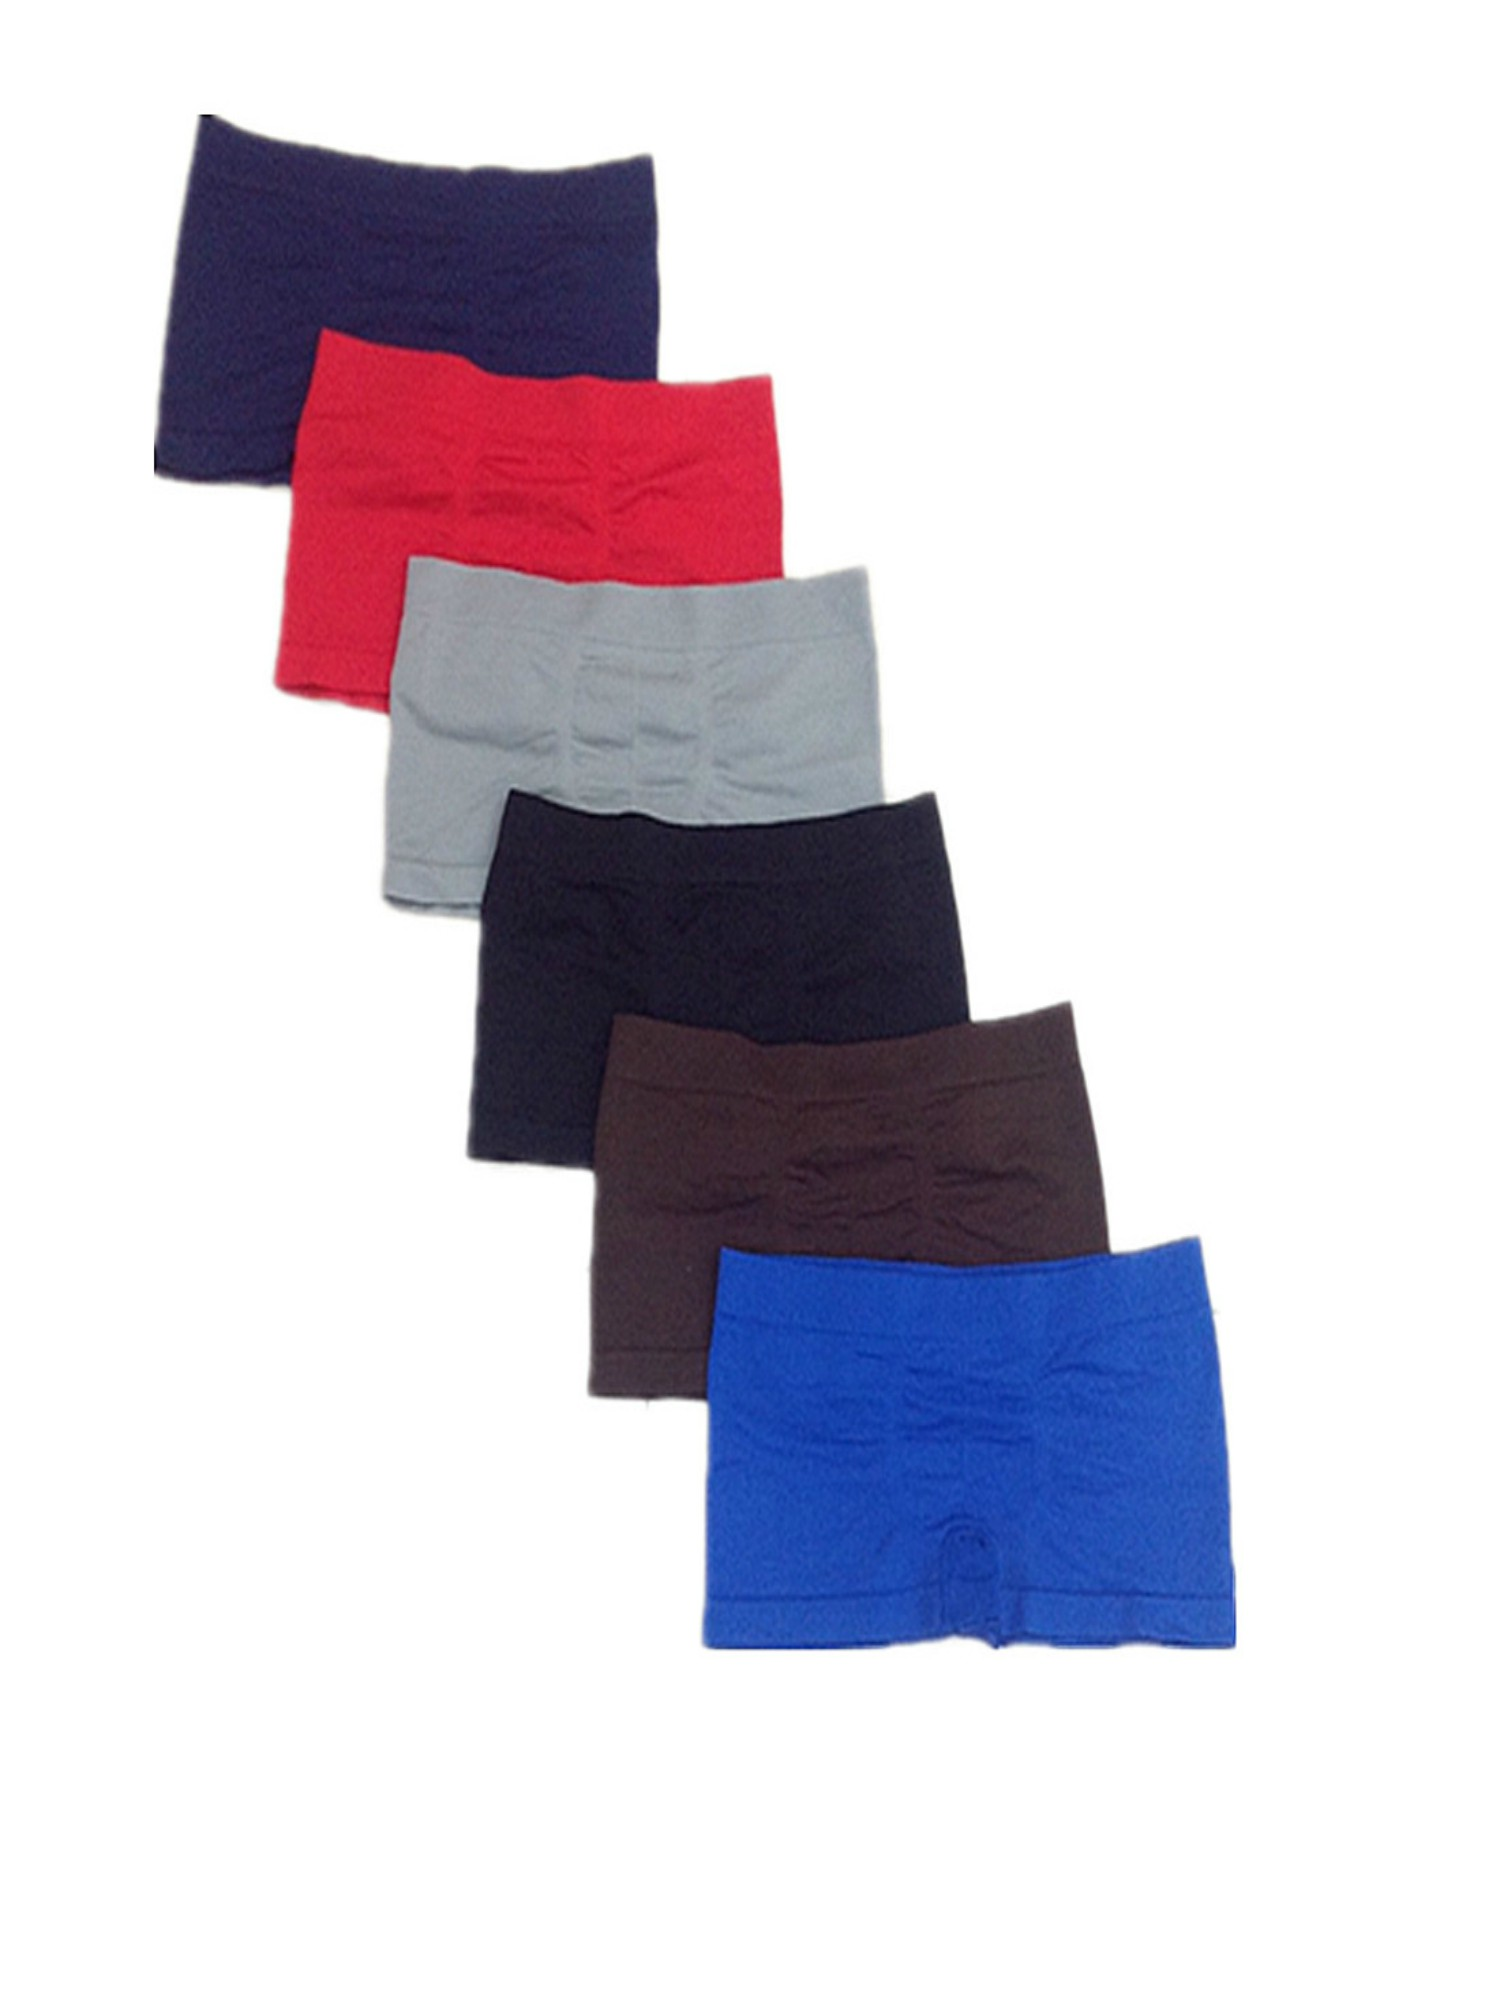 Boys 6-Pack Seamless Assorted Solid Colors Boxer Briefs - Small